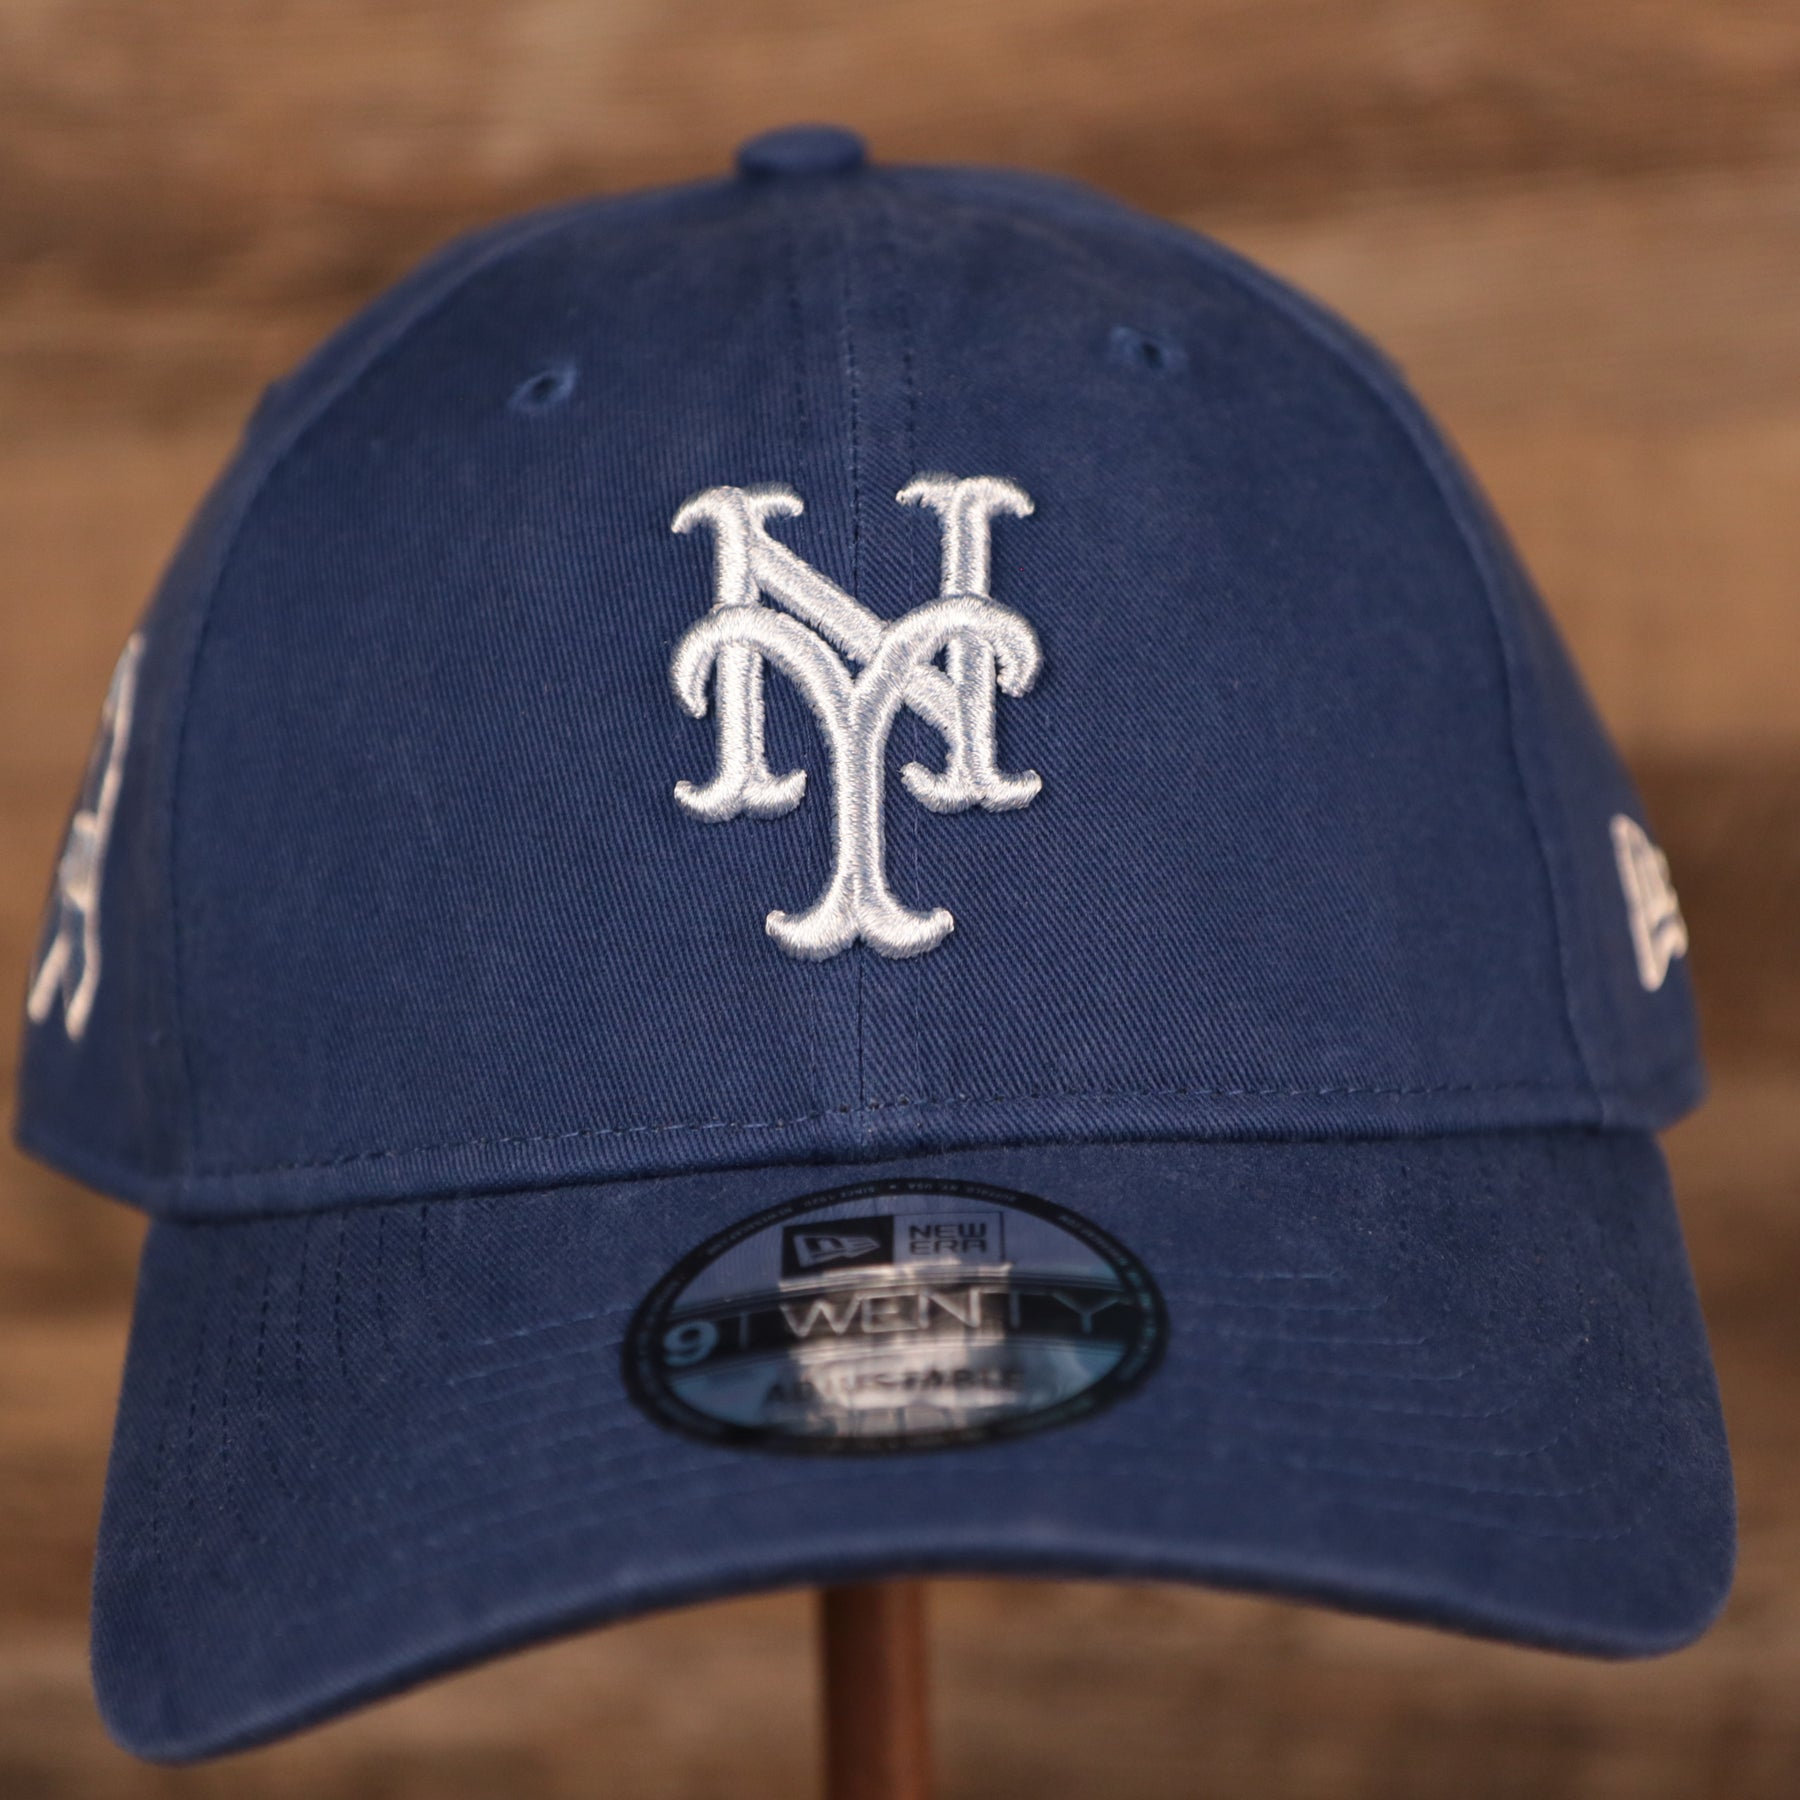 Baseball hat unique gift Custom Gifts for dad Mets Fathers day NYC Mets Dad hat New York City Baseball cap